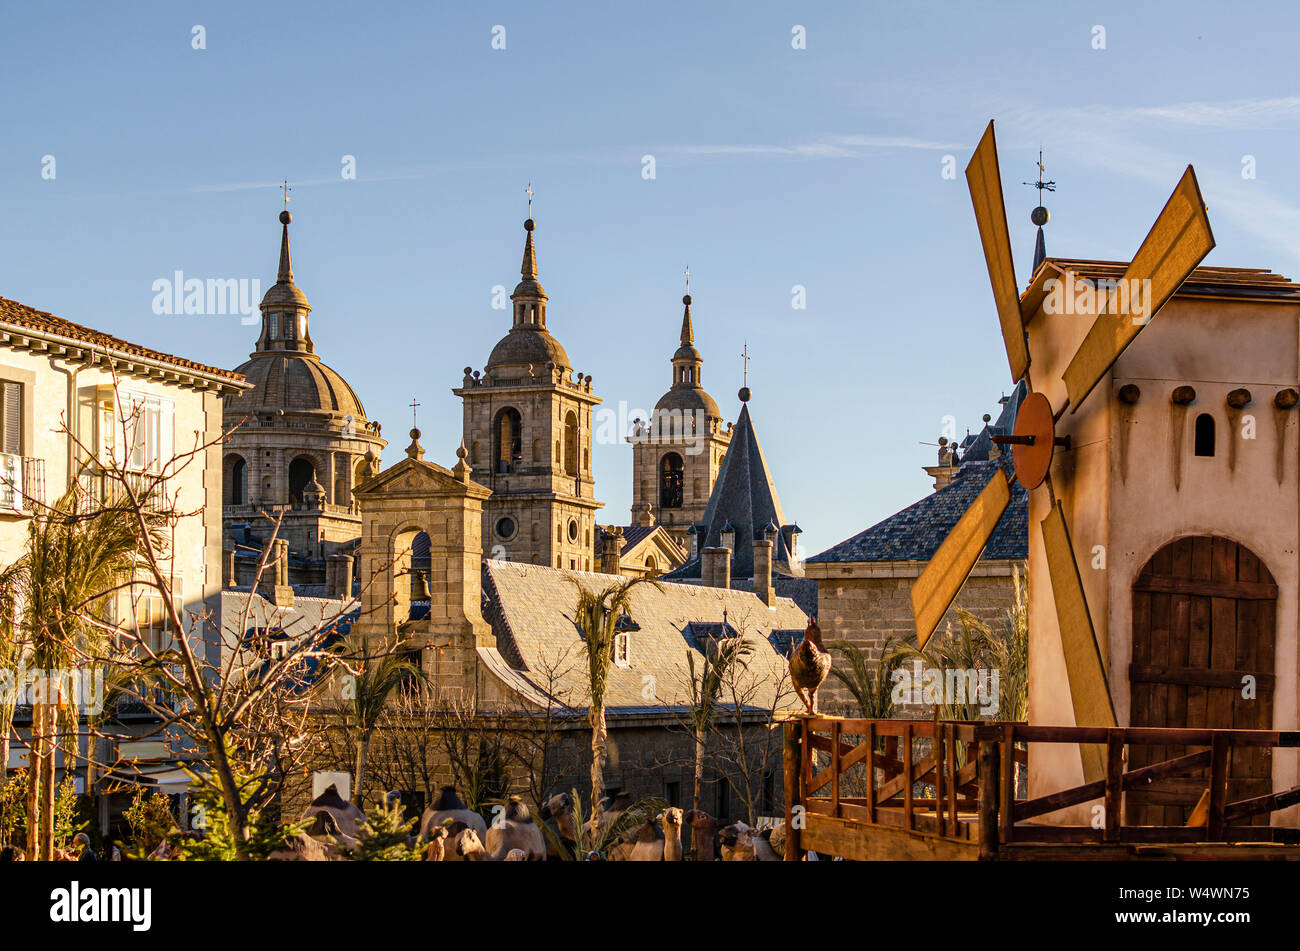 holiday with the towers of the monastery of El Escorial in the background. Madrid Spain Stock Photo